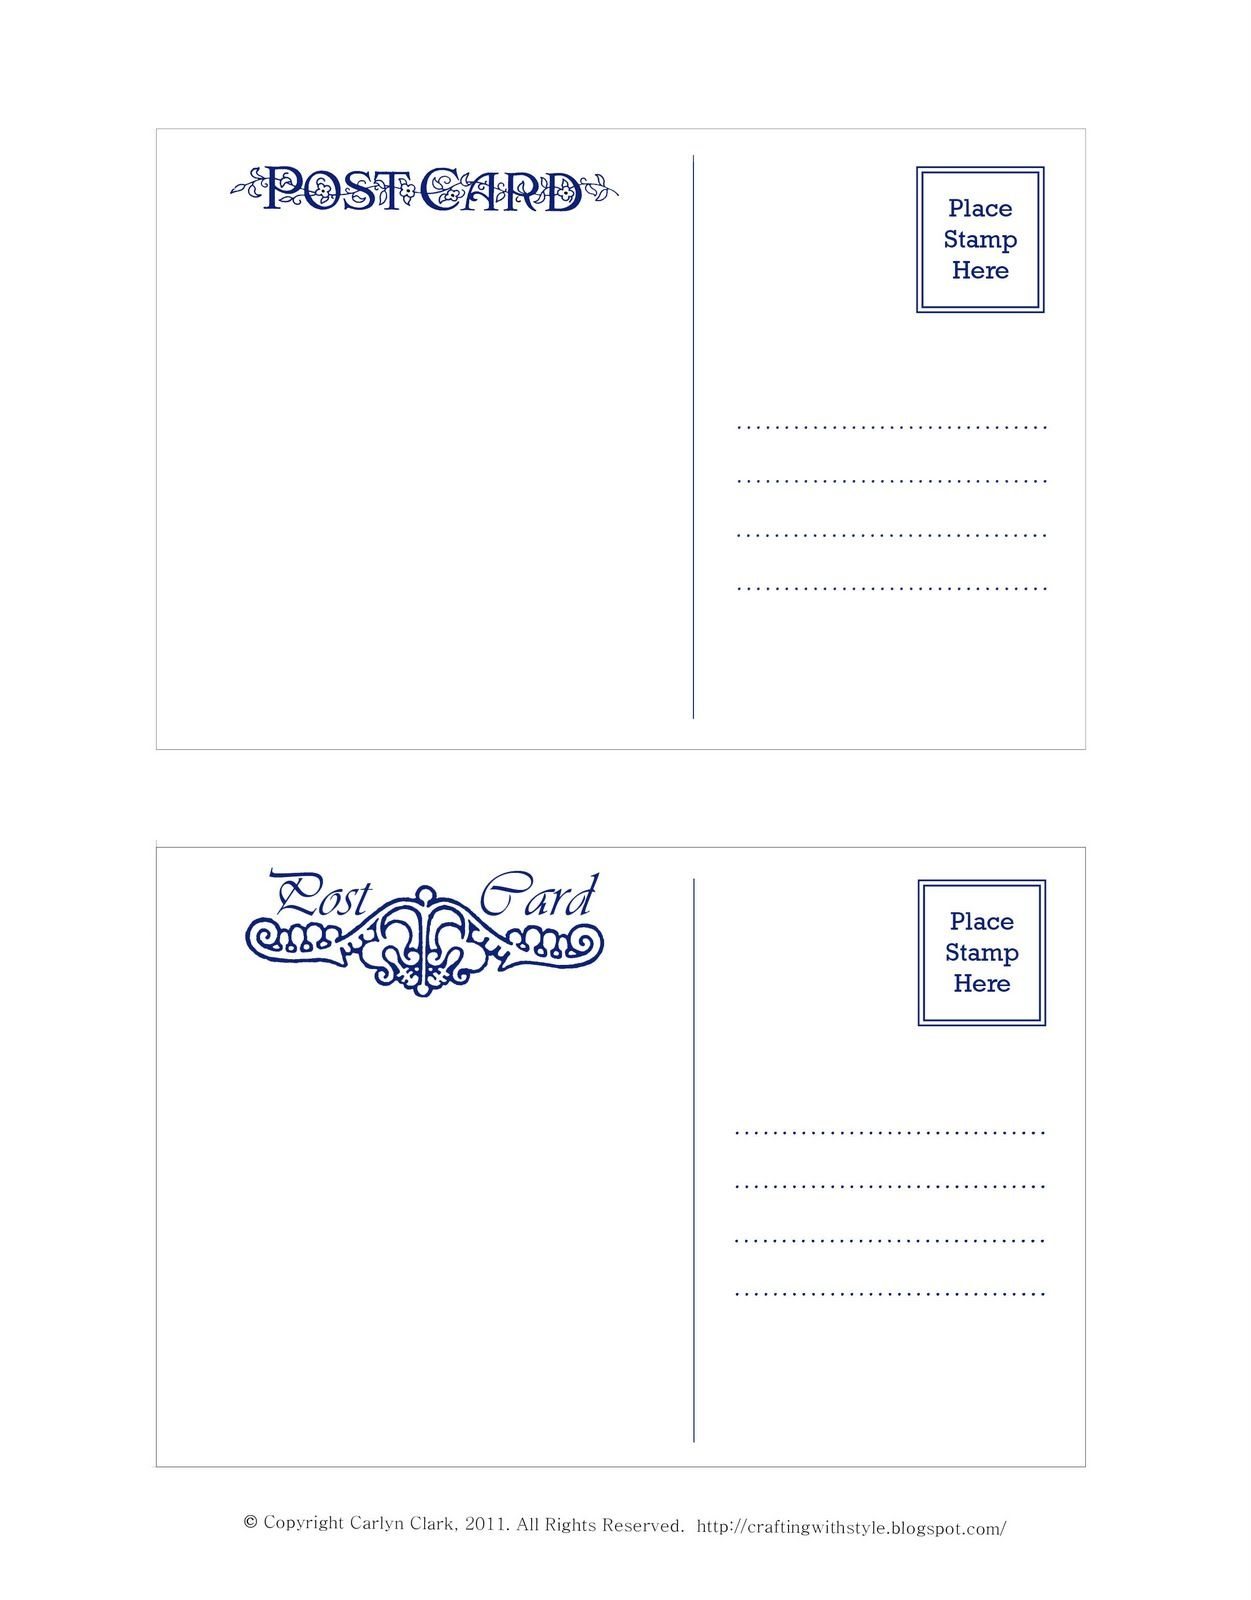 Crafting With Style: Free Postcard Templates